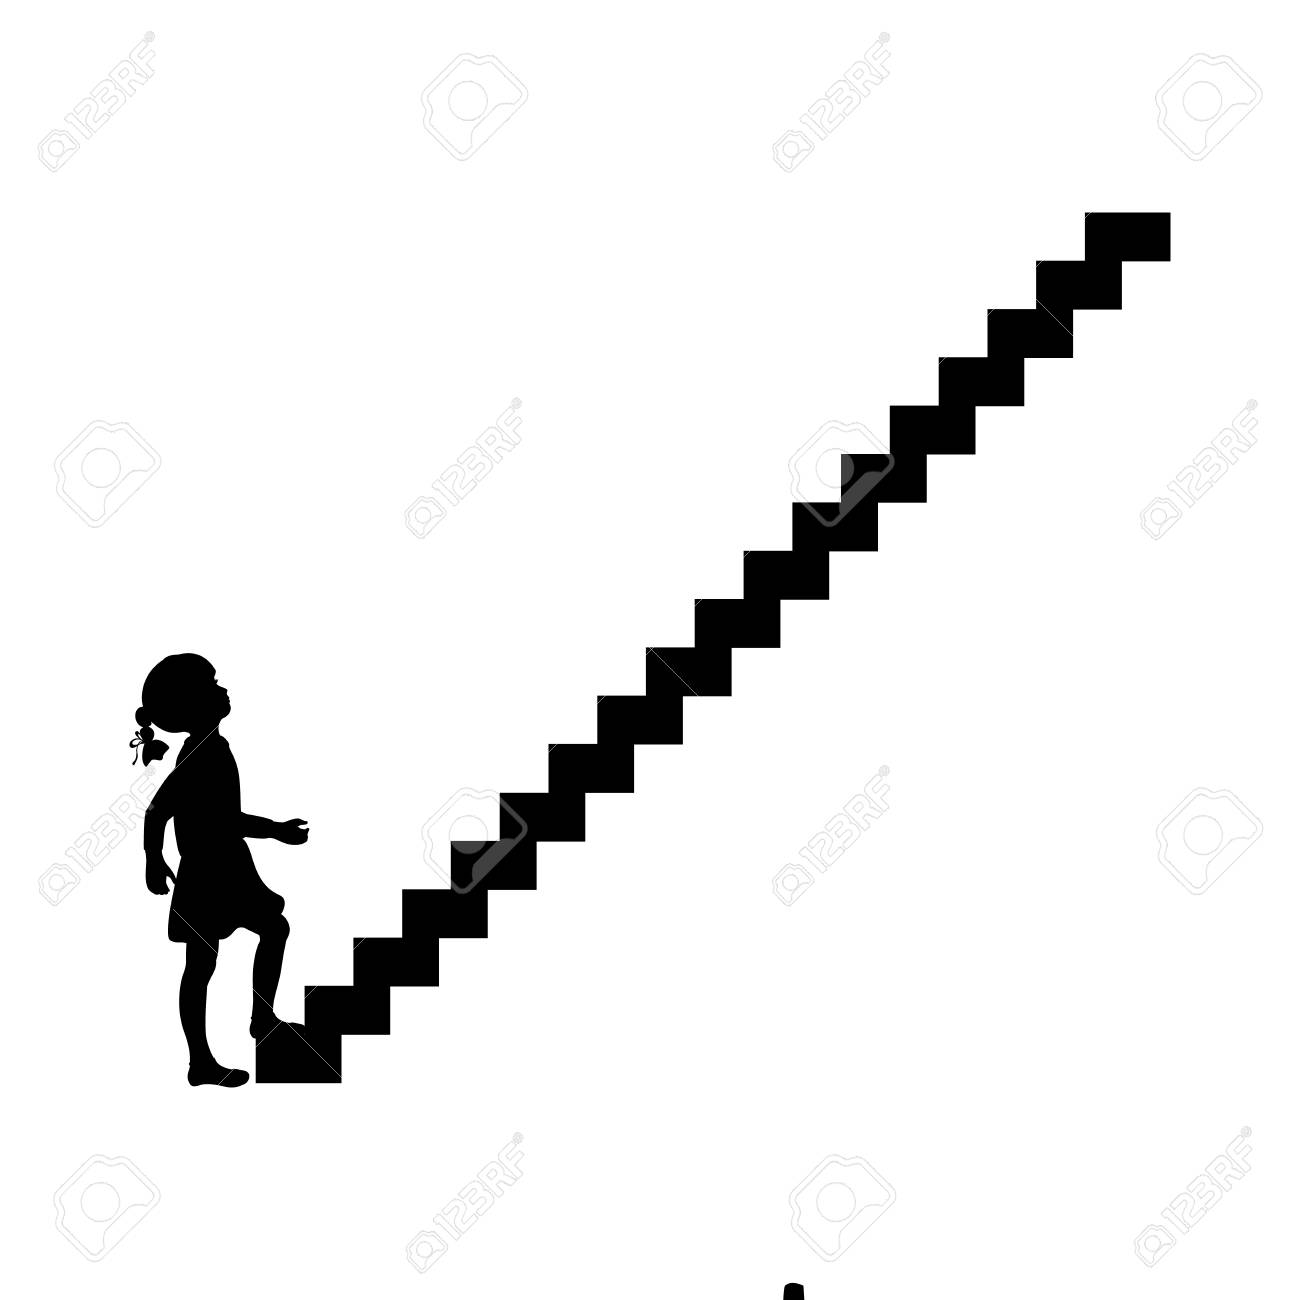 Silhouette girl up climbing stair.